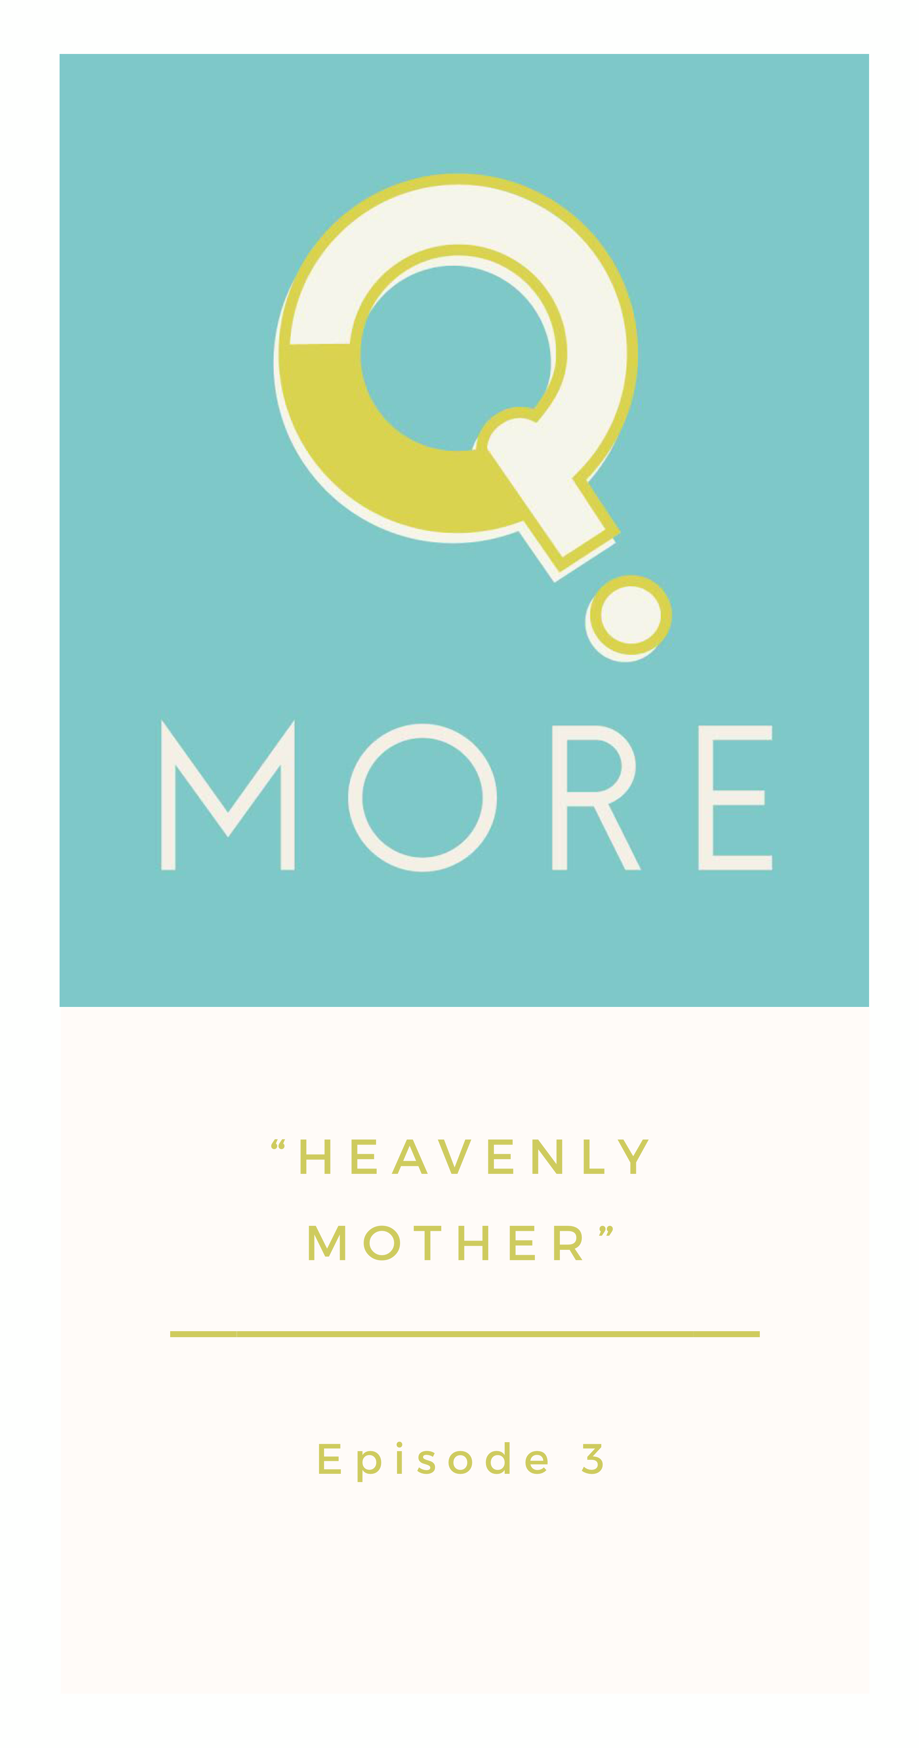 Q.More Podcast - Heavenly Mother, Episode 3